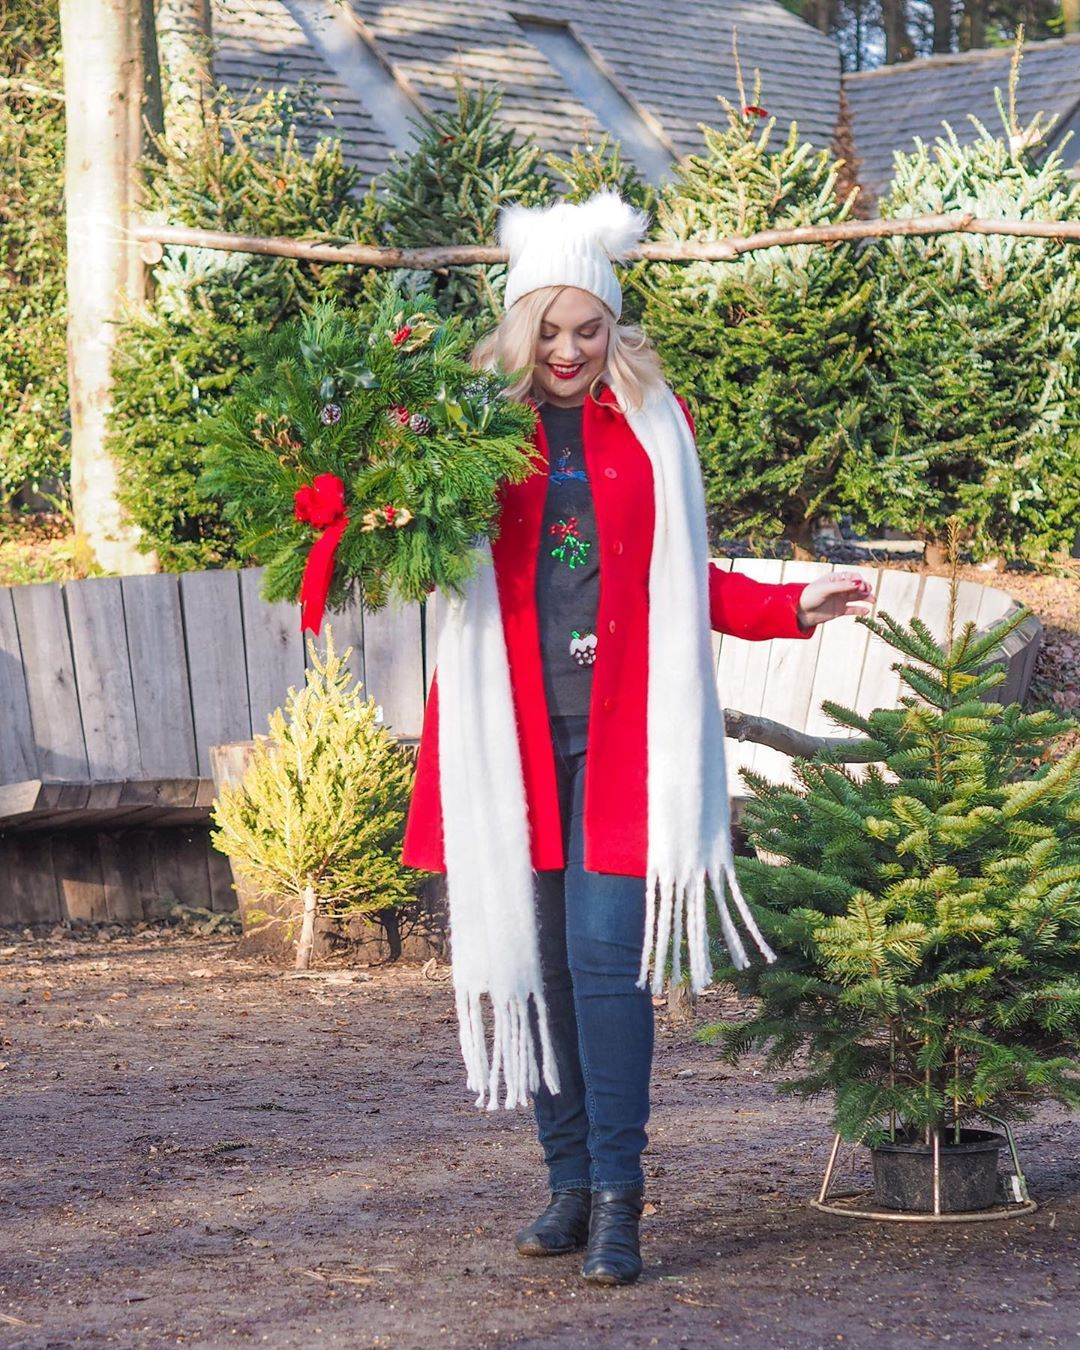 Katie Kirk Uk Style Blogger On Instagram In My Heart Is A Christmas Tree Farm Where The People Would Come T In 2020 Christmas Tree Farm Tree Farms Fashion Blogger